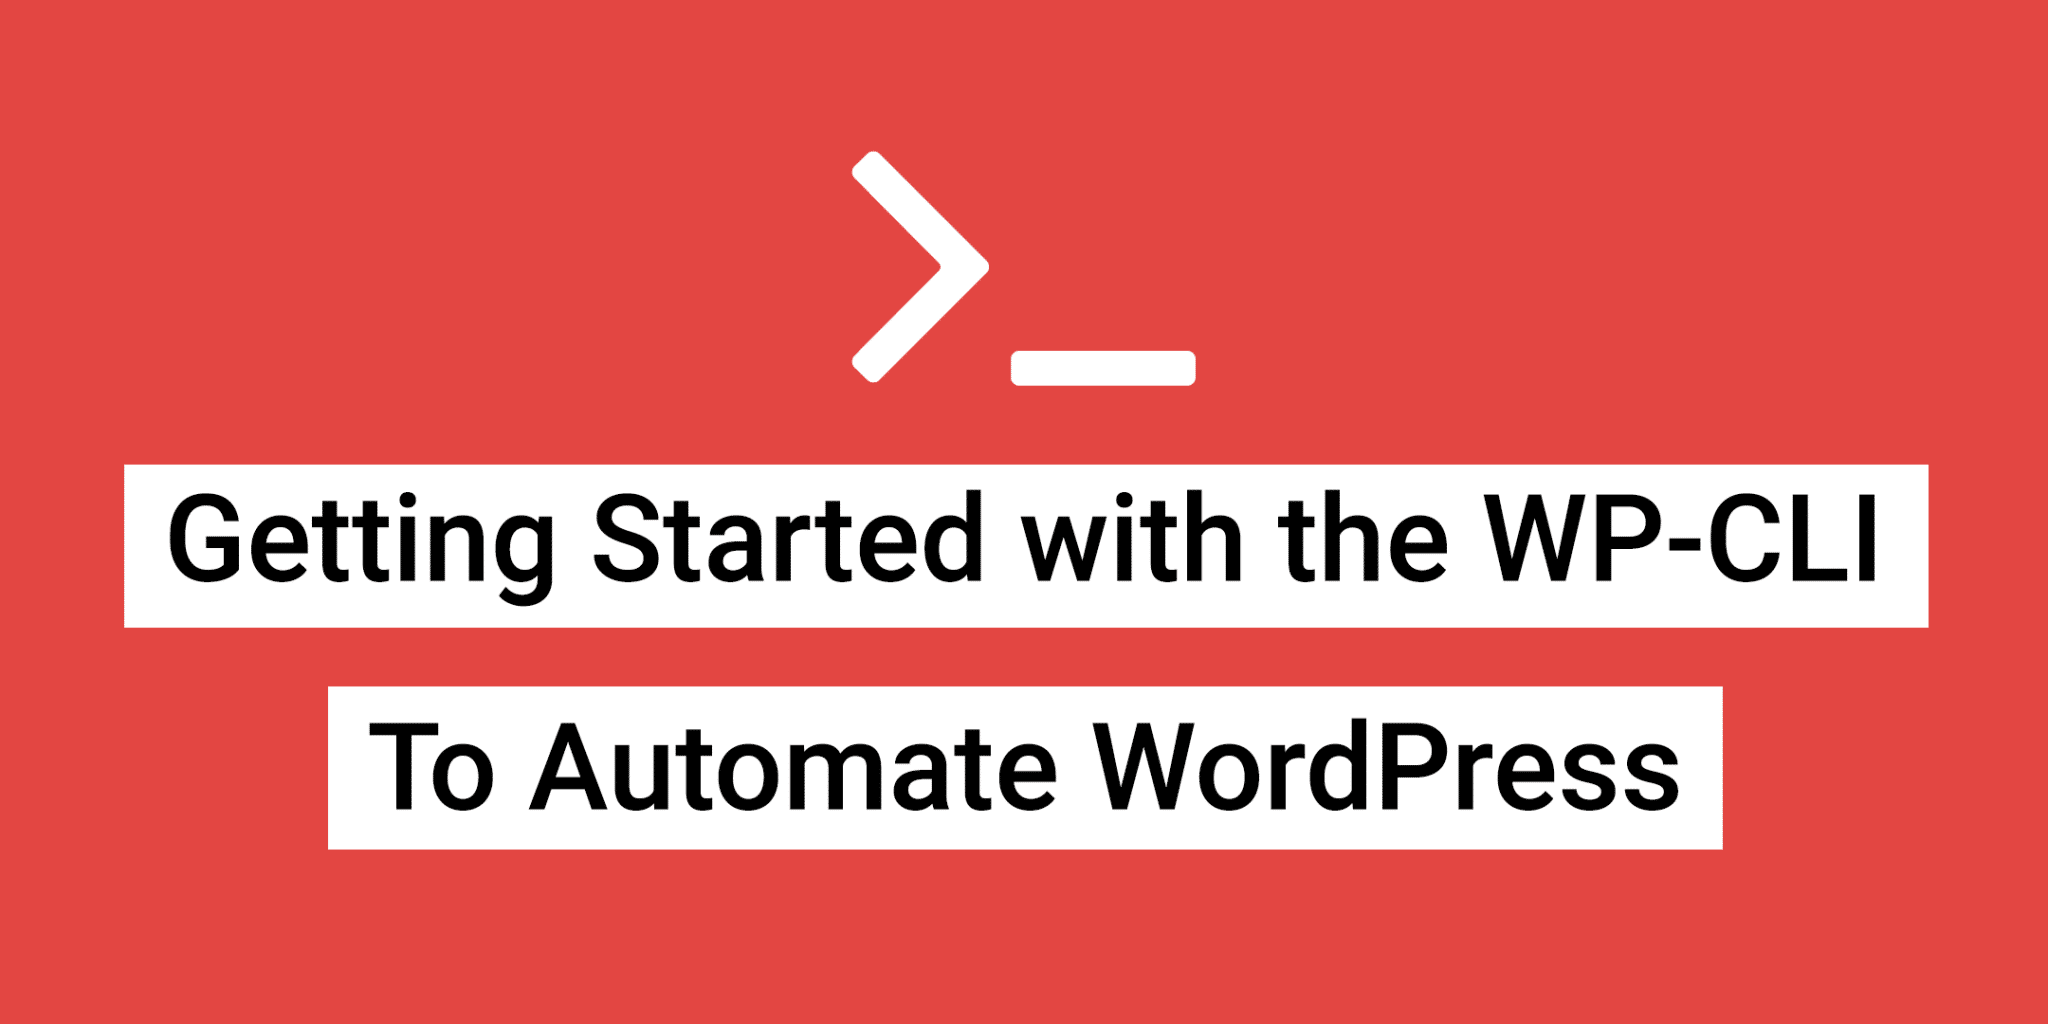 Getting Started with the WP-CLI